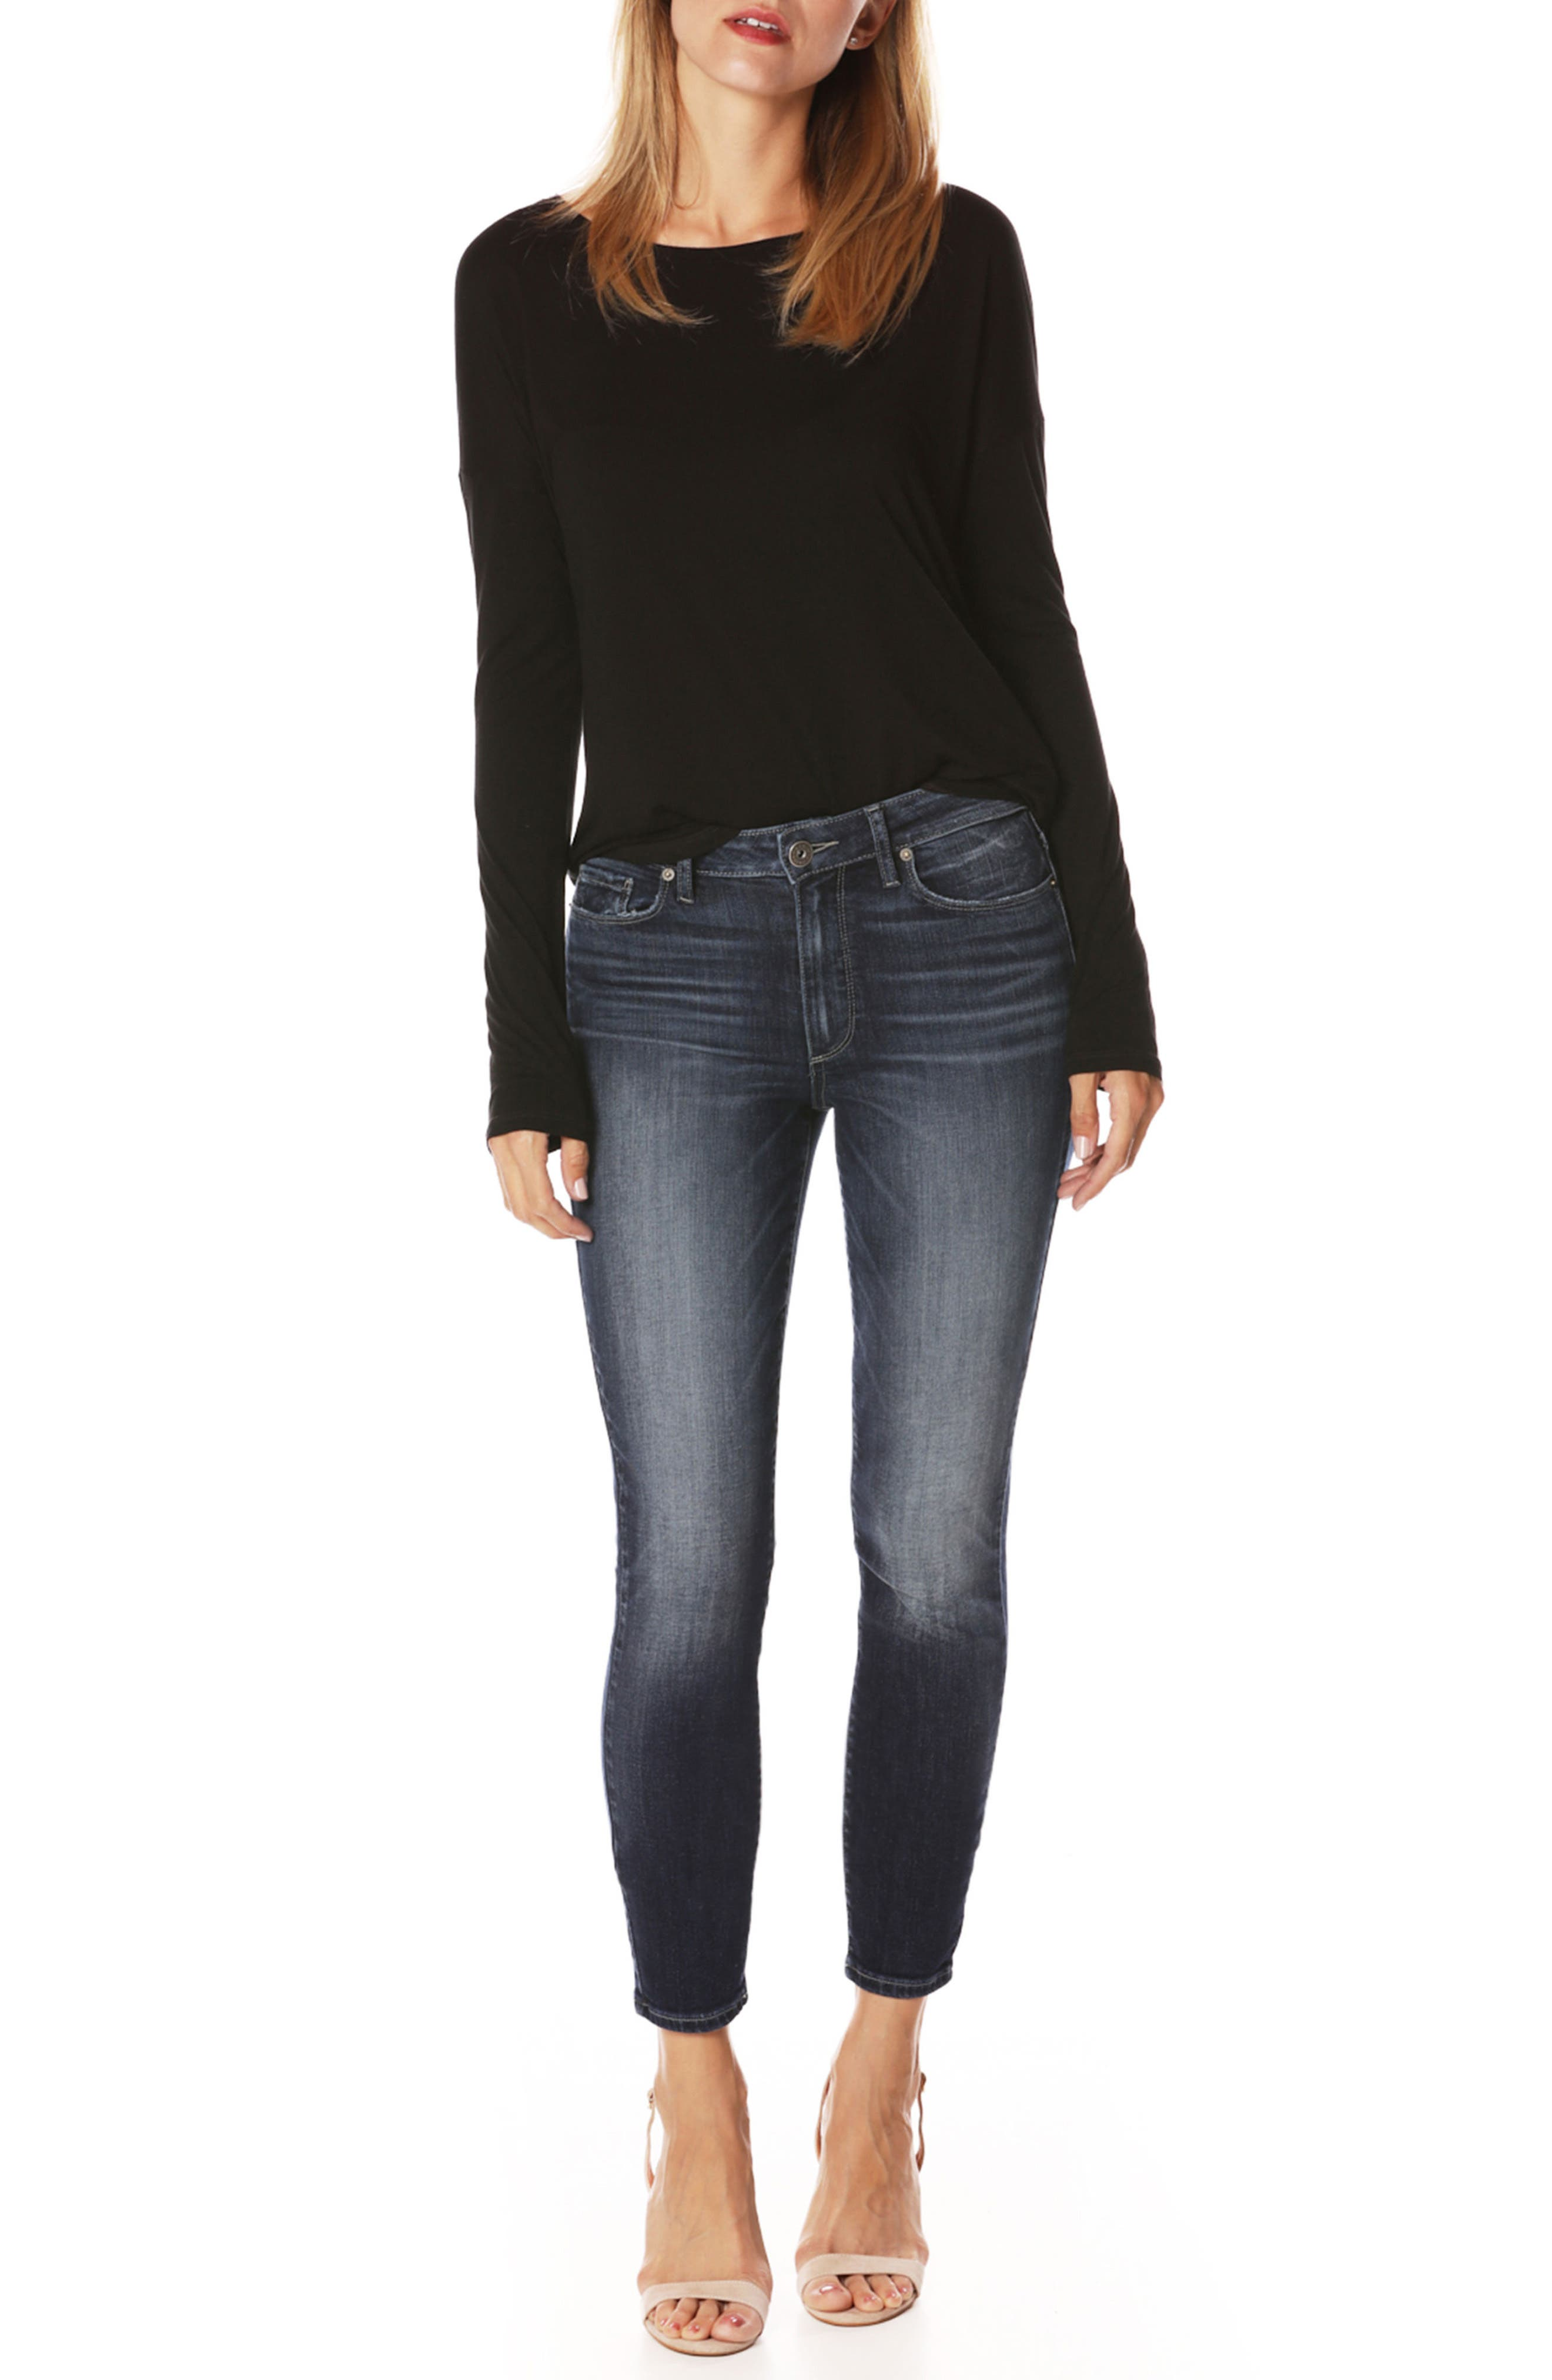 Transcend Vintage - Hoxton High Waist Crop Ultra Skinny Jeans,                             Alternate thumbnail 3, color,                             400